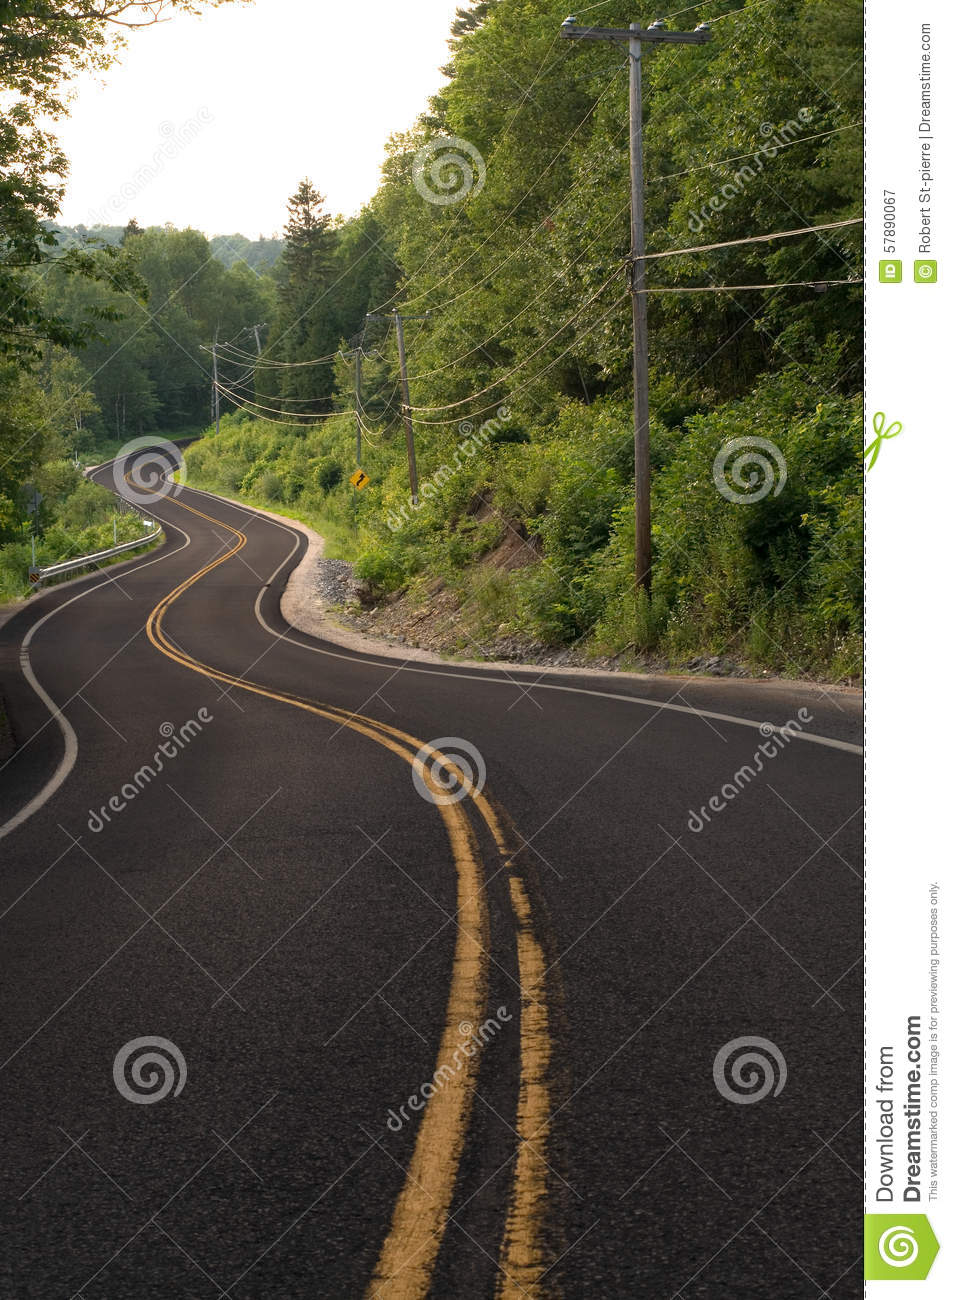 multiple curves in a road through the forest stock image image of